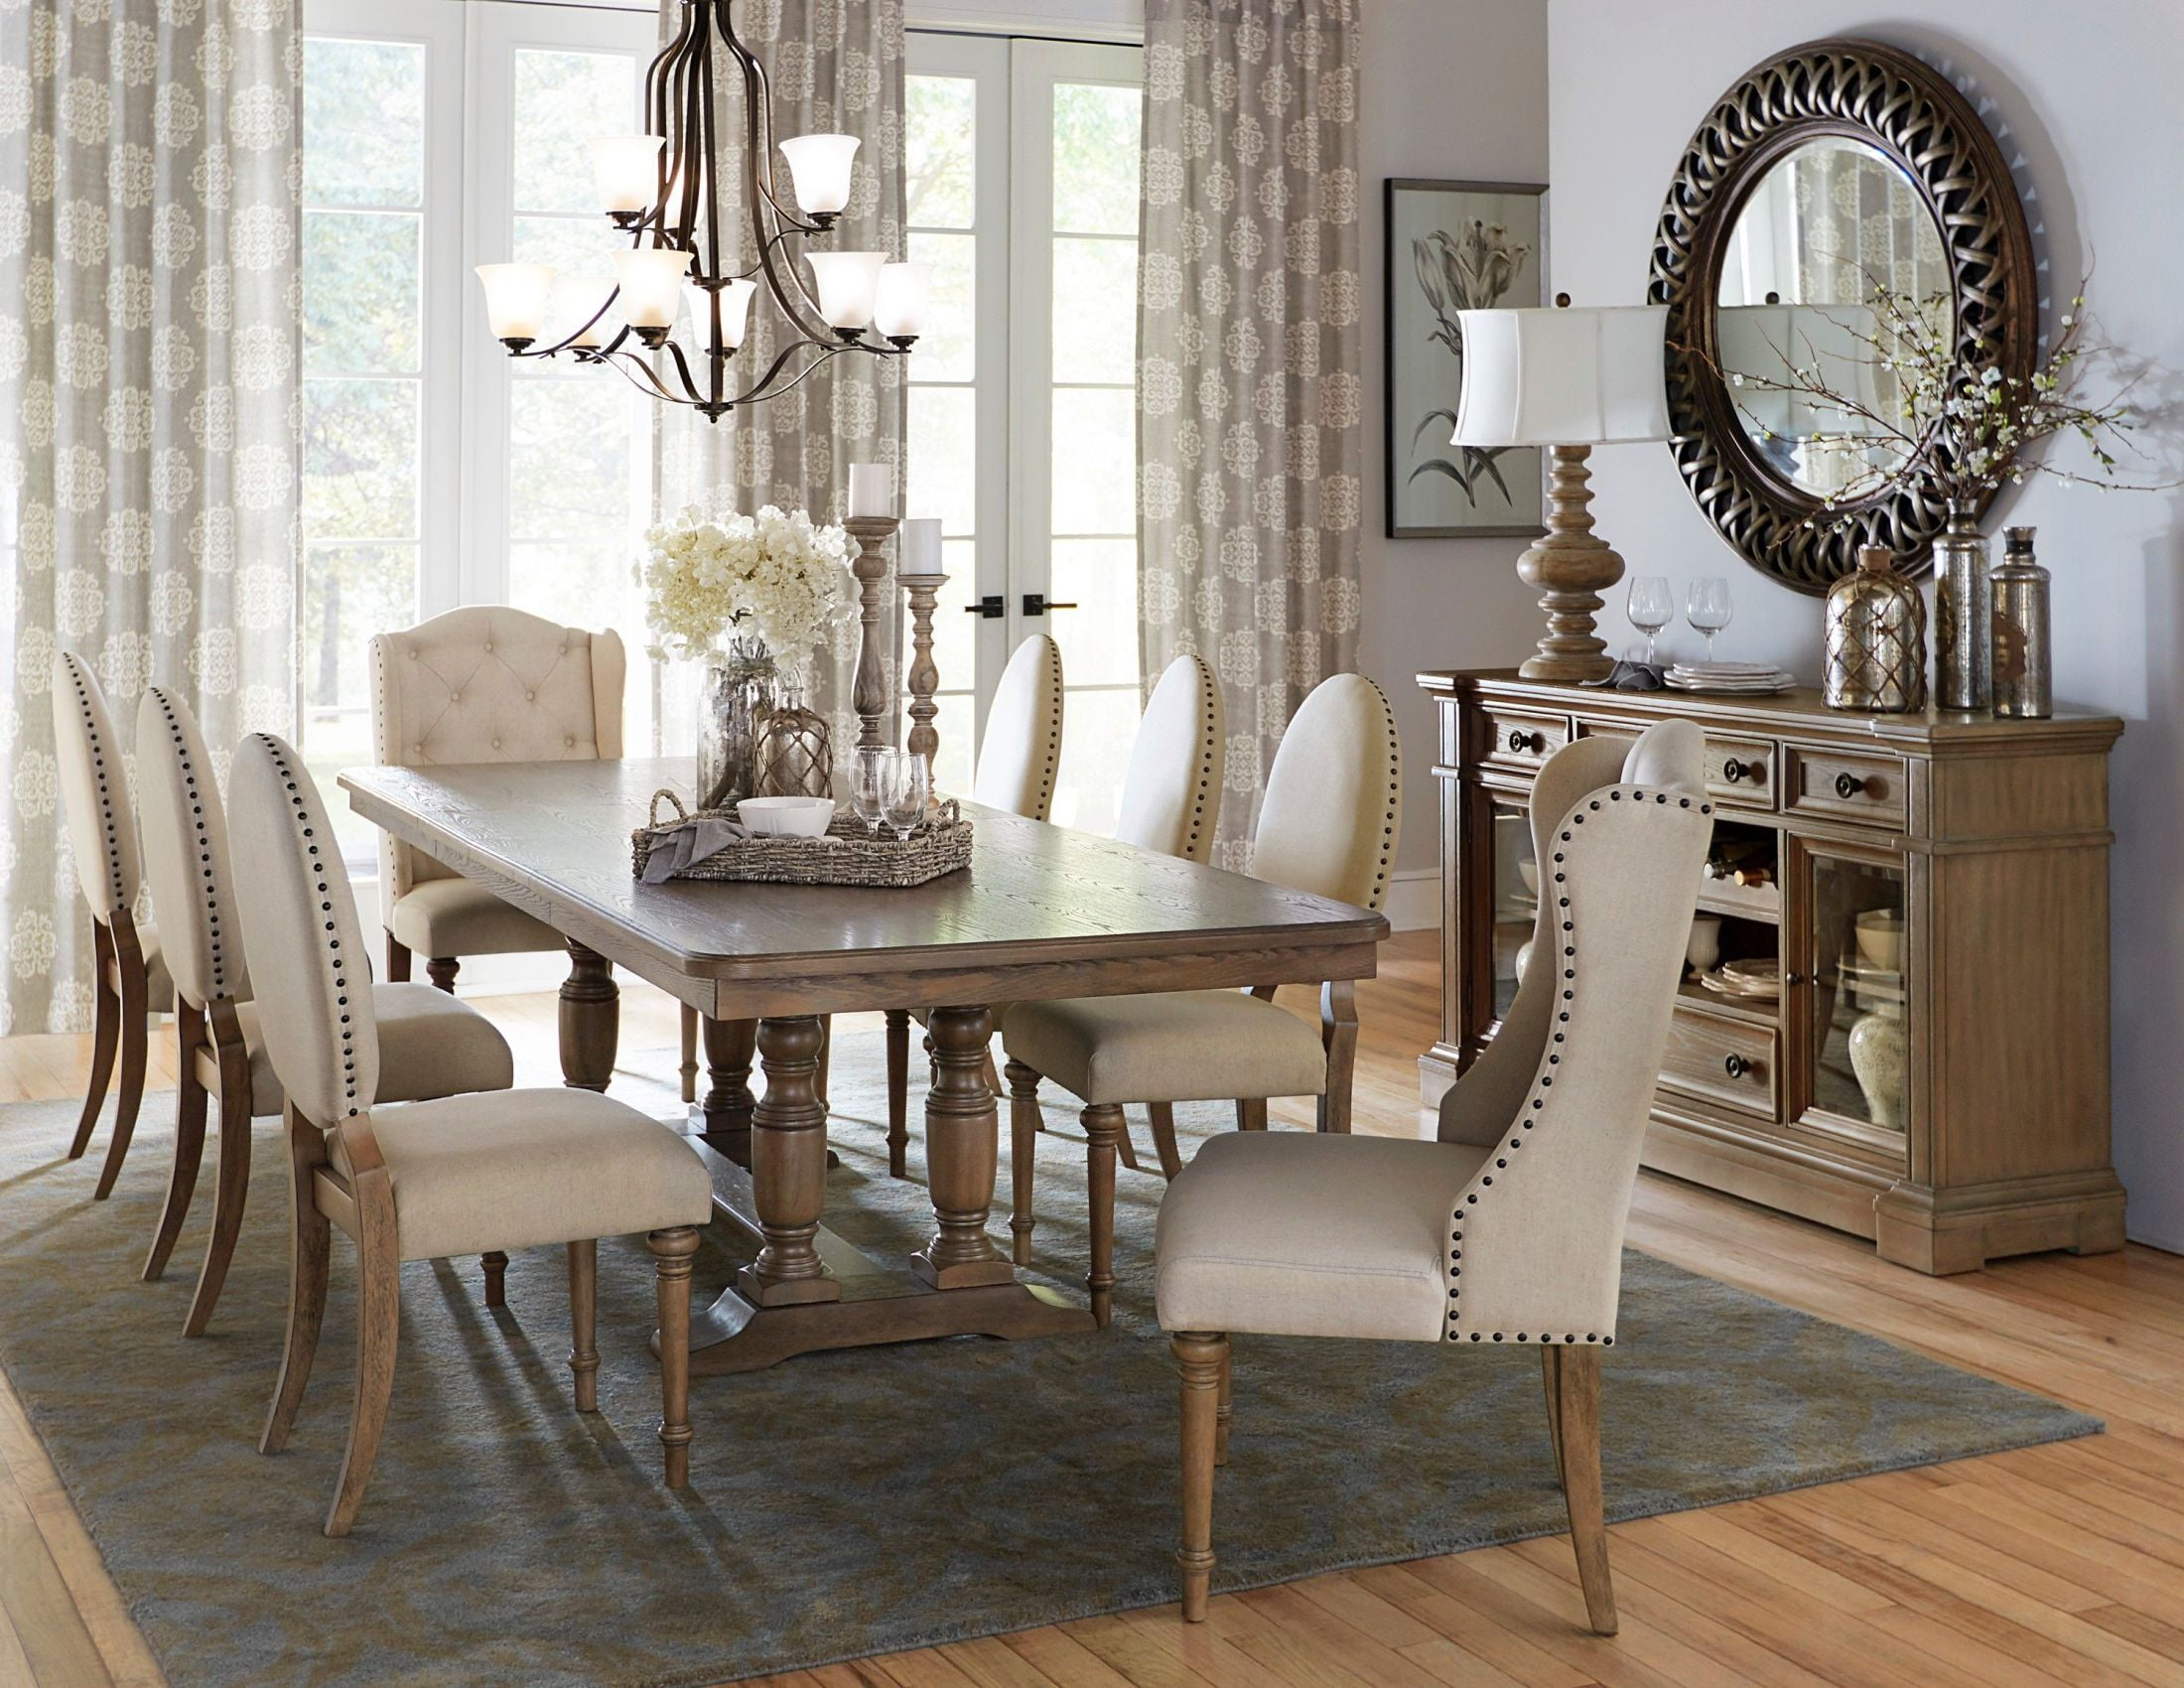 Avignon Natural Taupe Extendable Double Trestle Dining Room Setmedia Image